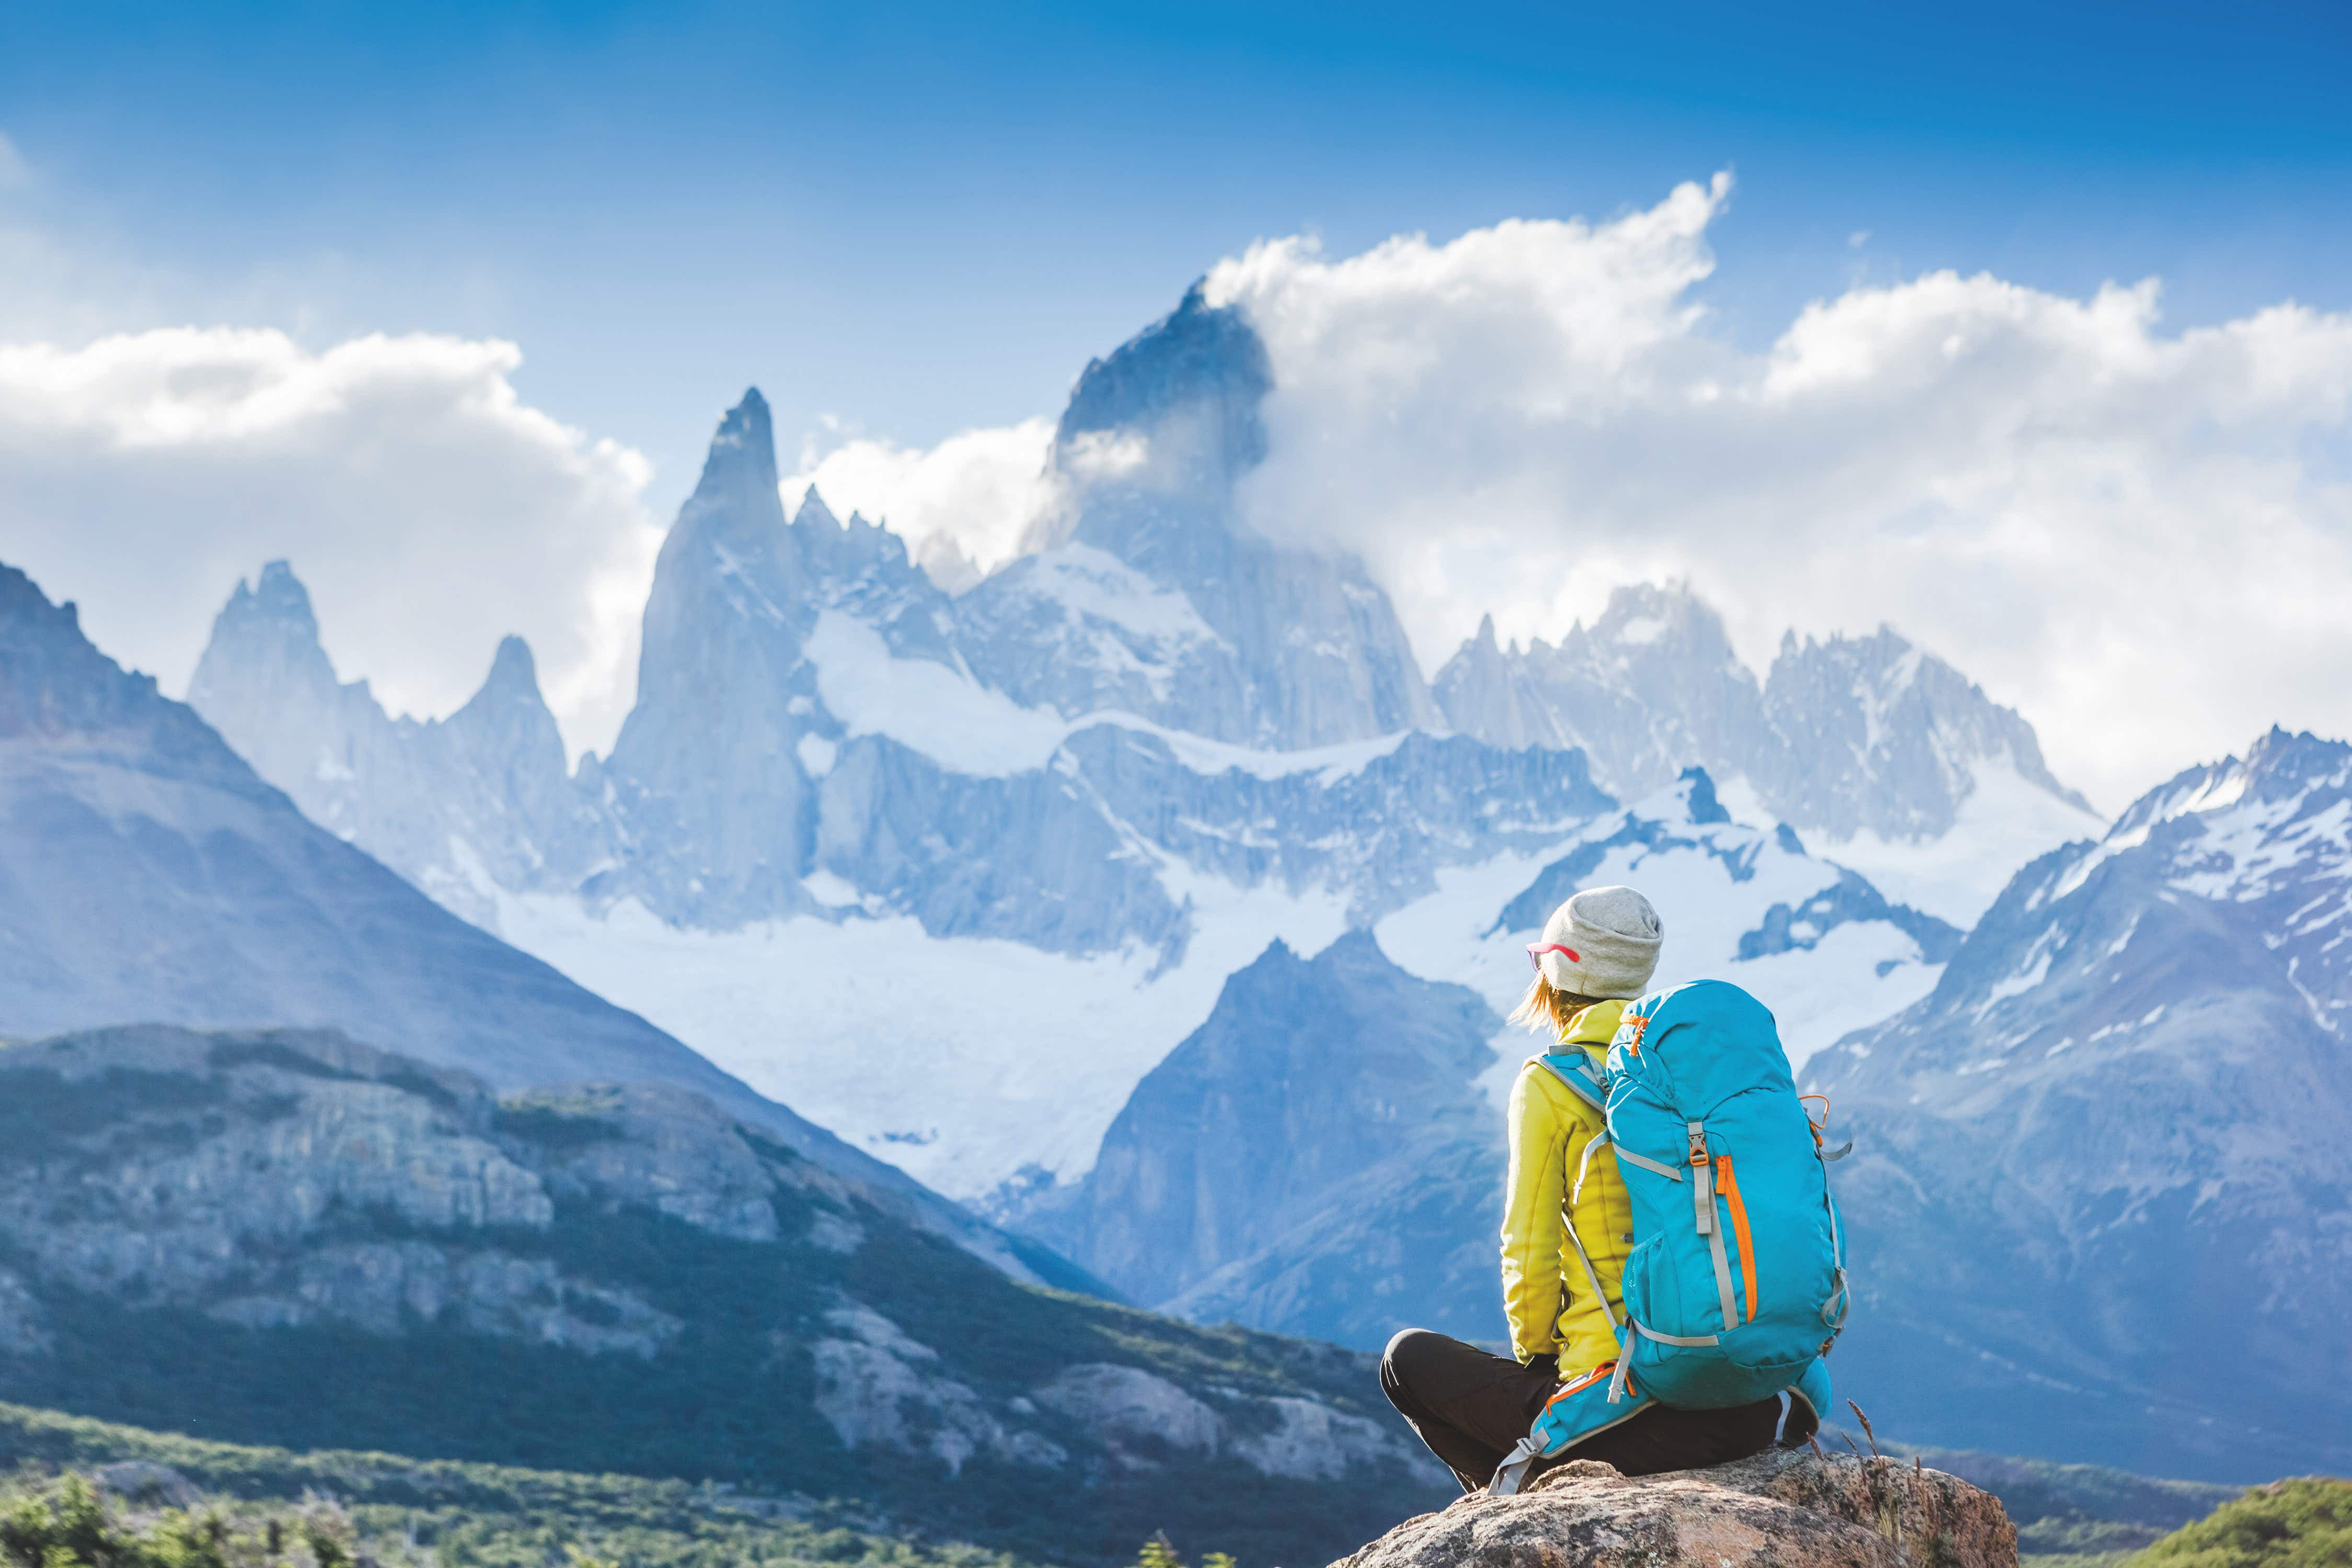 Adventure traveler fall in love with Fitz Roy, Patagonia, El Chalten - Argentina; Shutterstock ID 552773971; Your name (First / Last): daniel; GL account no.: DDiPaolo_lonelyplanet; Netsuite department name: DDiPaolo_lonelyplanet; Full Product or Project name including edition: Epic Hikes Of The World